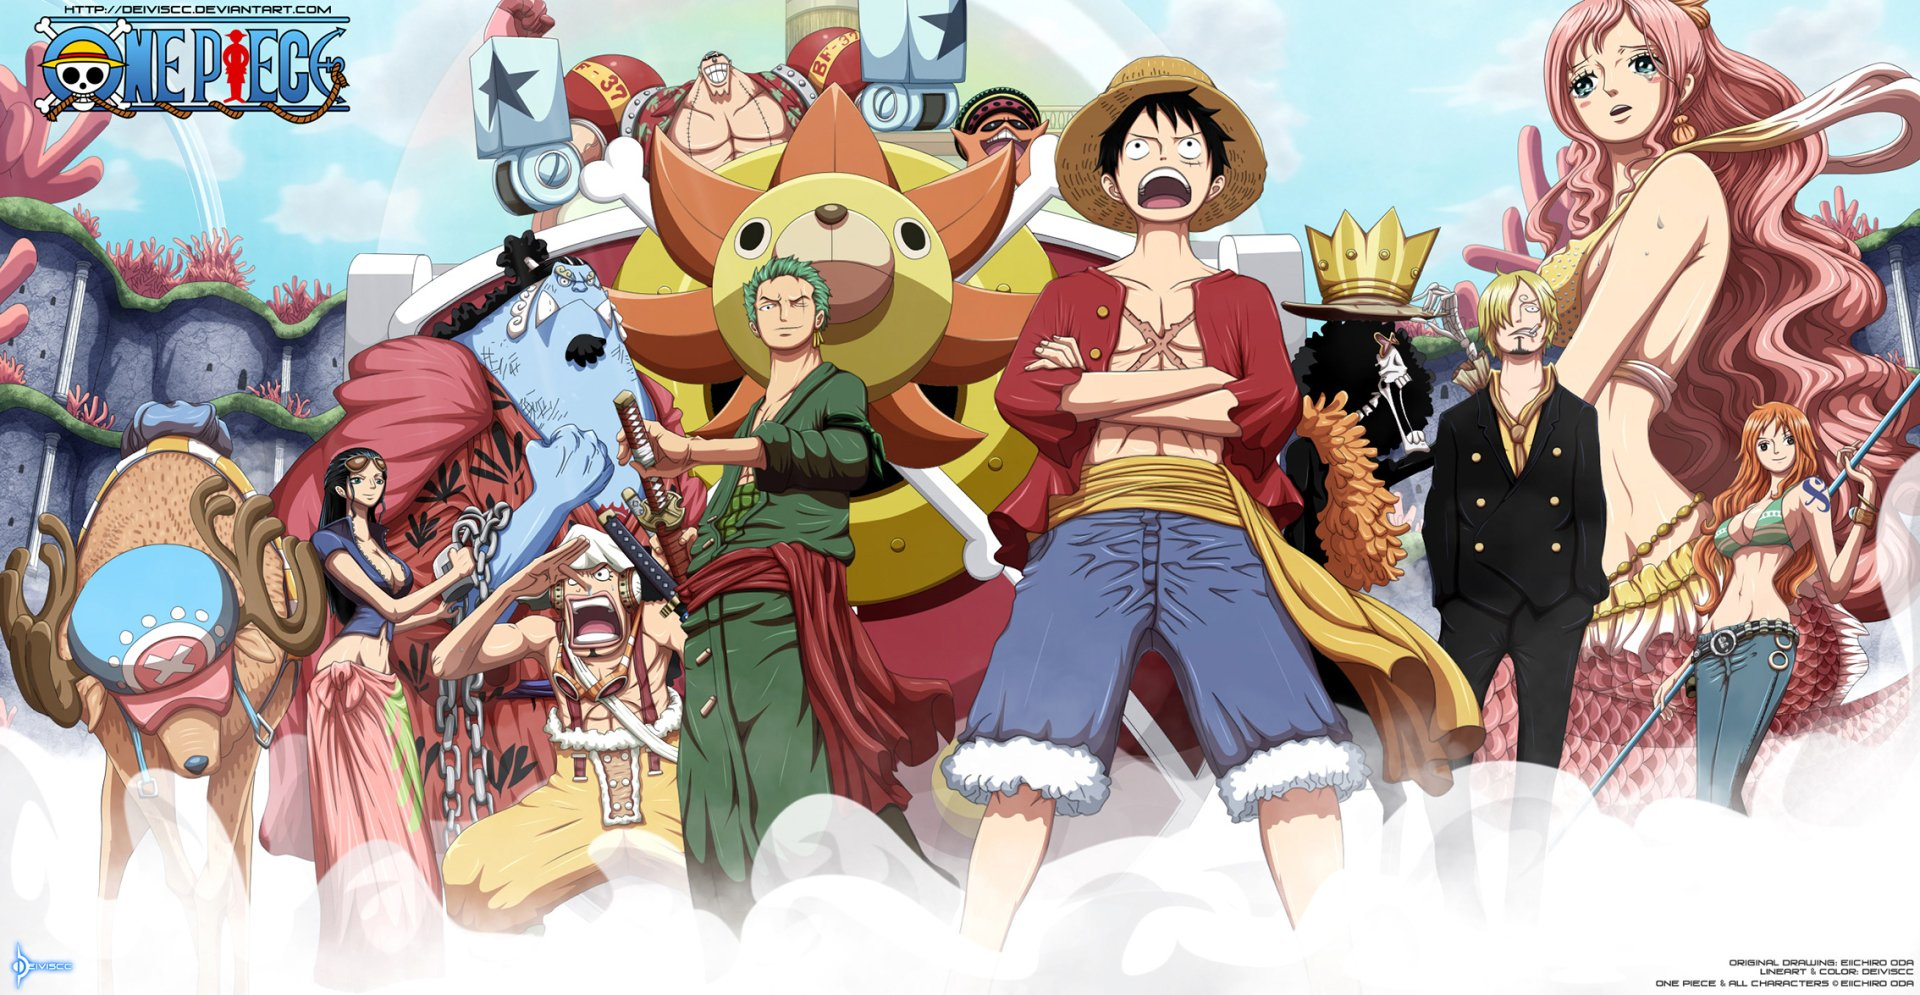 动漫 - 海贼王  Pappug (One Piece) Shirahoshi (One Piece) Nami (One Piece) Sanji (One Piece) Brook (One Piece) Monkey D. Luffy Zoro Roronoa Sunny (One Piece) Franky (One Piece) Jinbe (One Piece) Usopp (One Piece) Nico Robin Tony Tony Chopper 壁纸